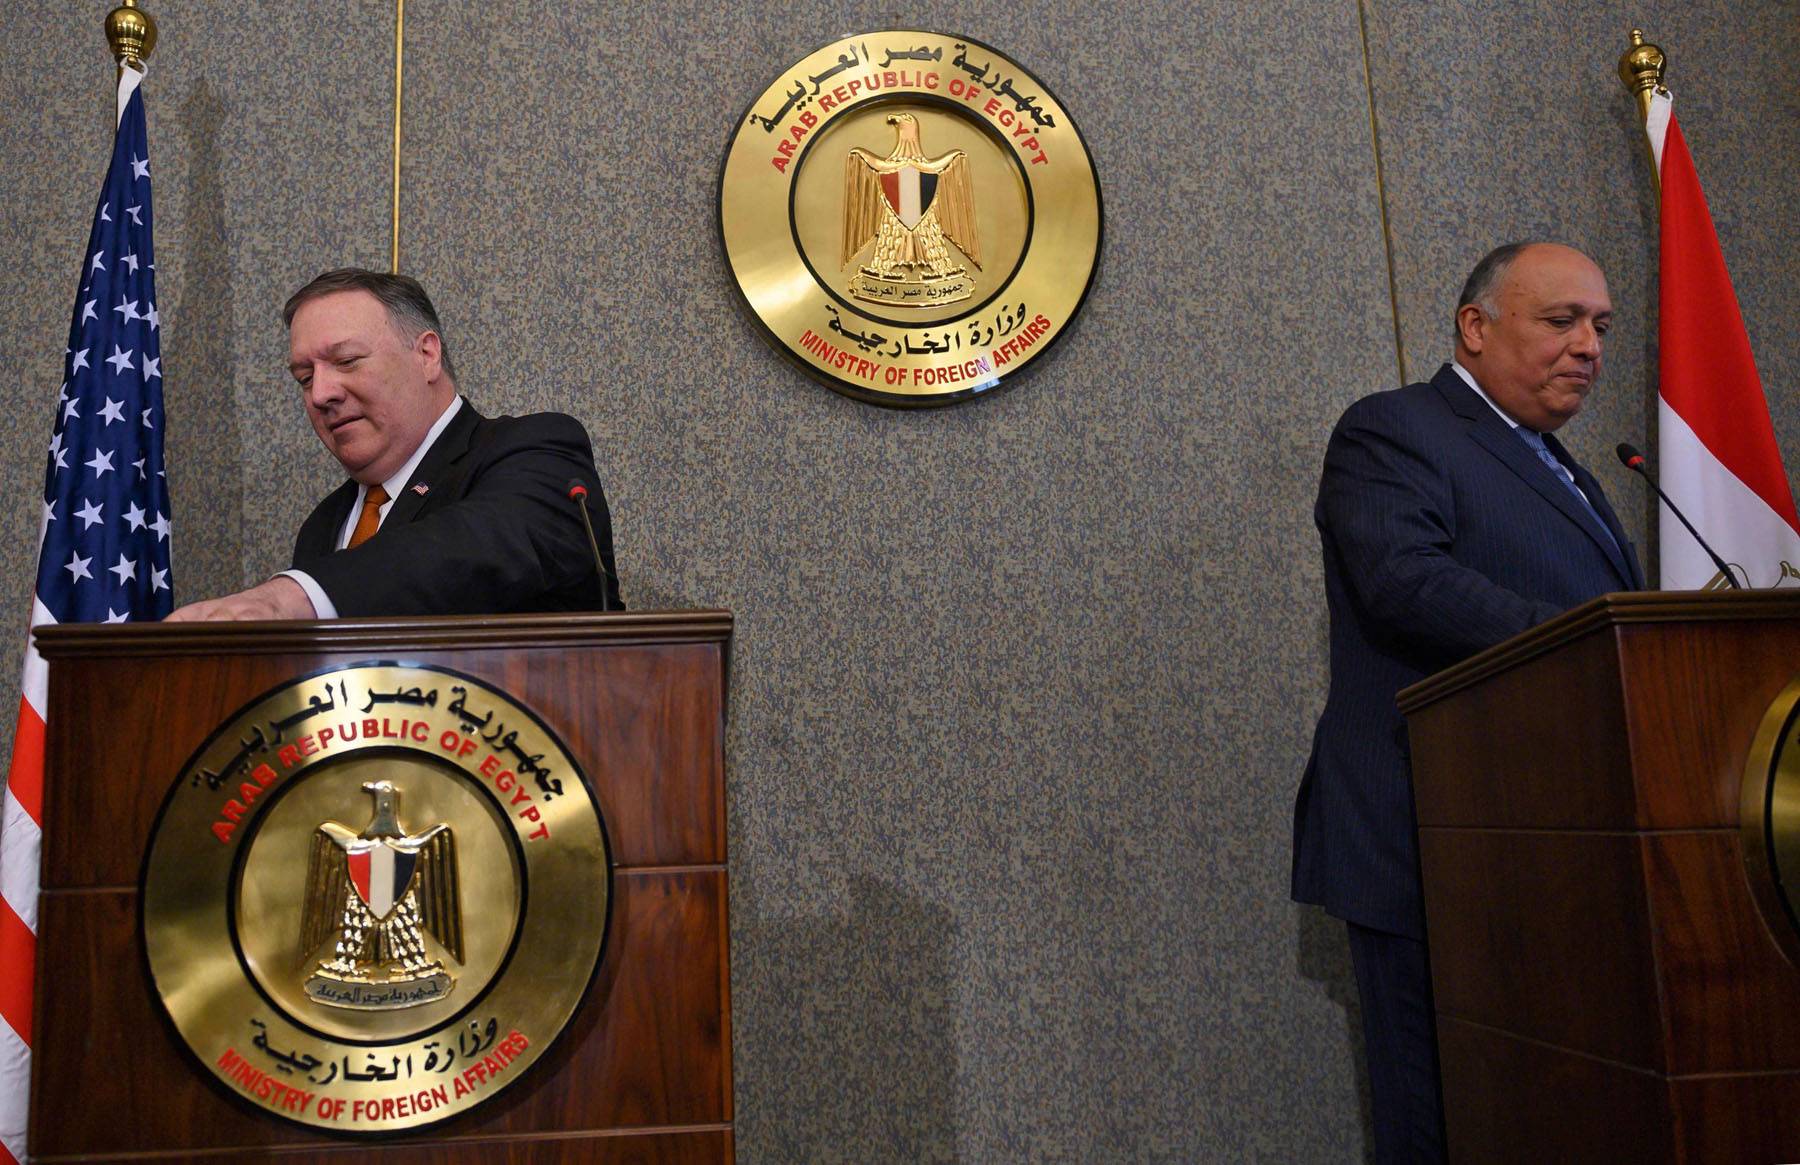 US Secretary of State Mike Pompeo (L) holds a joint press conference with Egyptian Foreign Minister Sameh Shoukry at the ministry of foreign affairs in Cairo on January 10, 2019. (AFP)